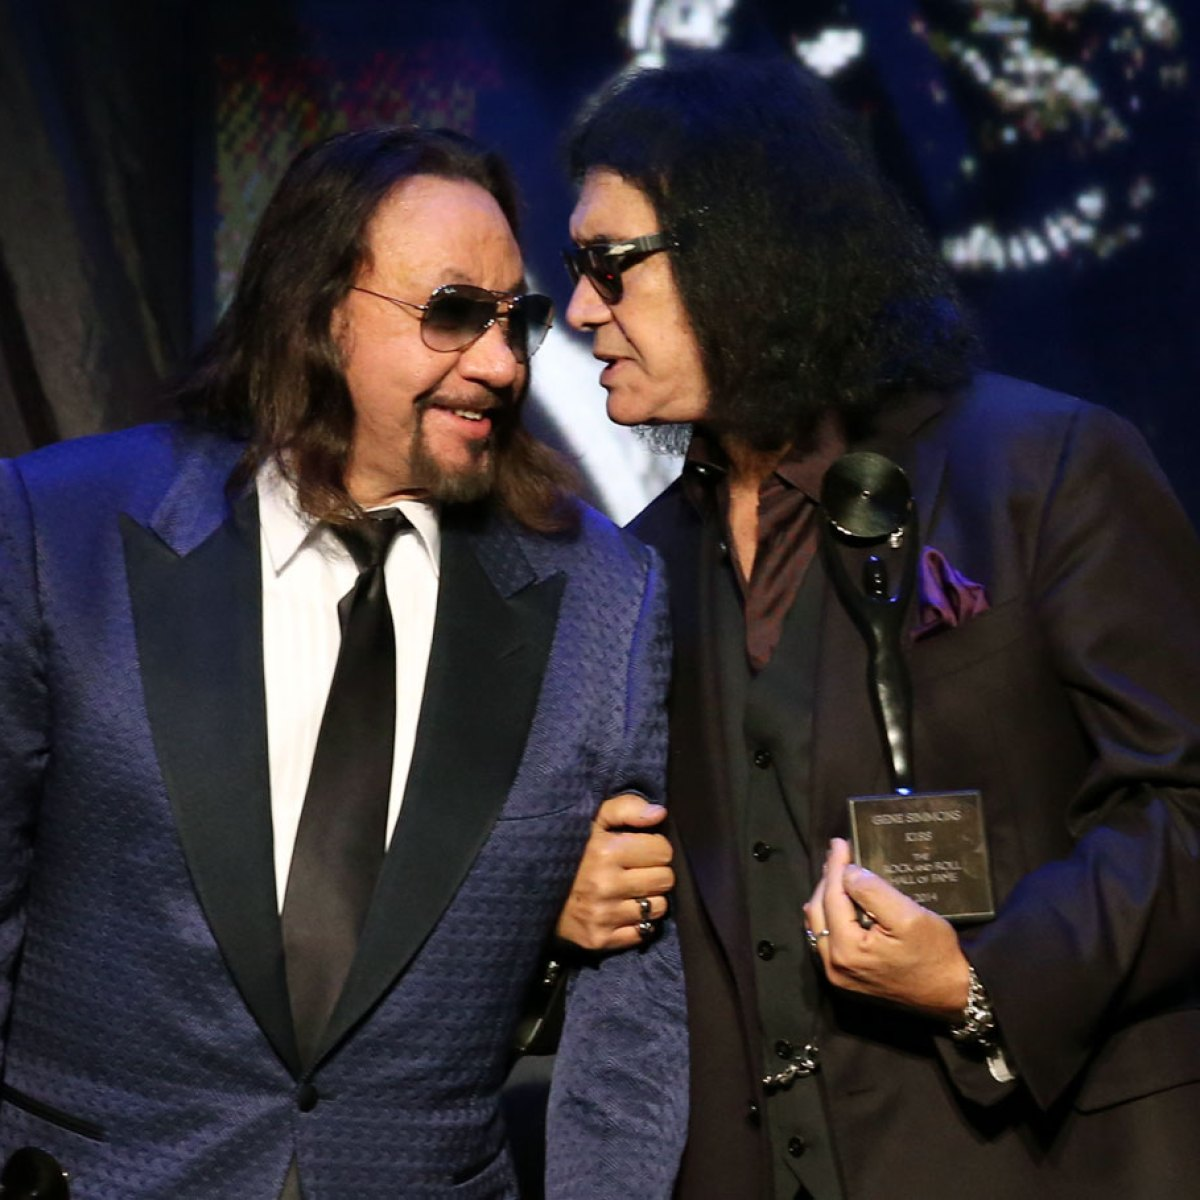 Ace Frehley Accuses Gene Simmons Of Groping His Wife